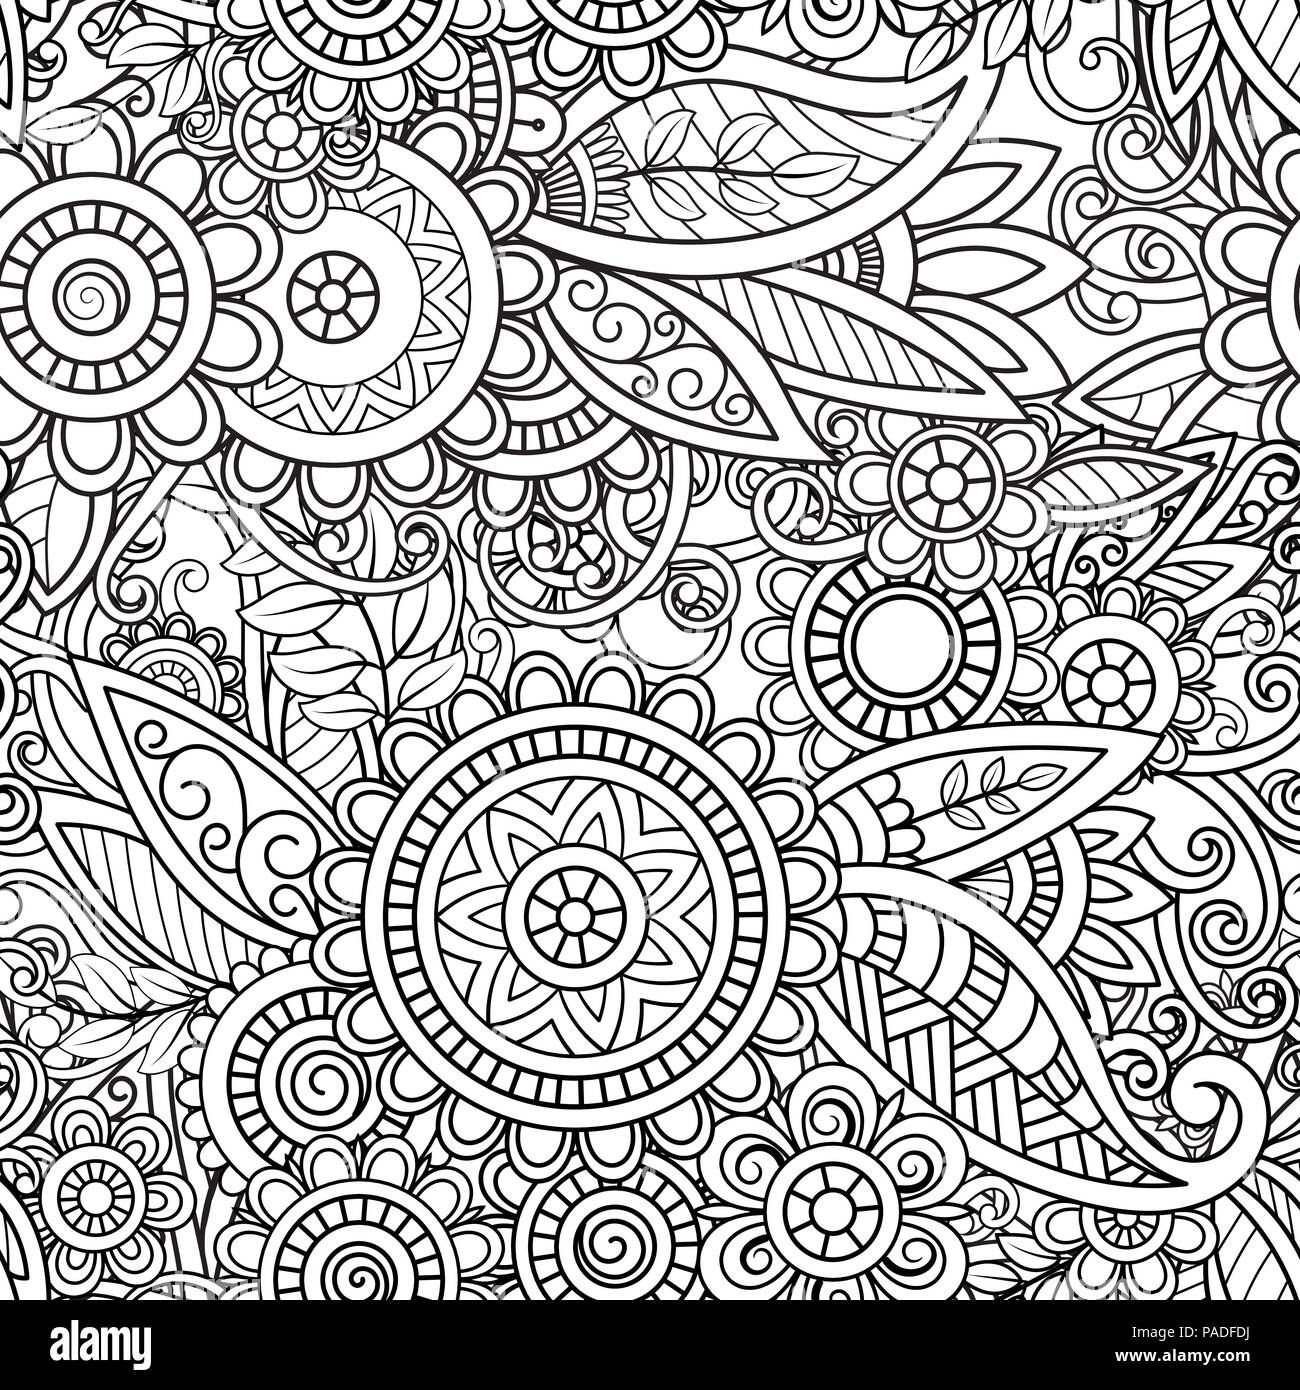 flower mandalas adult coloring book white background